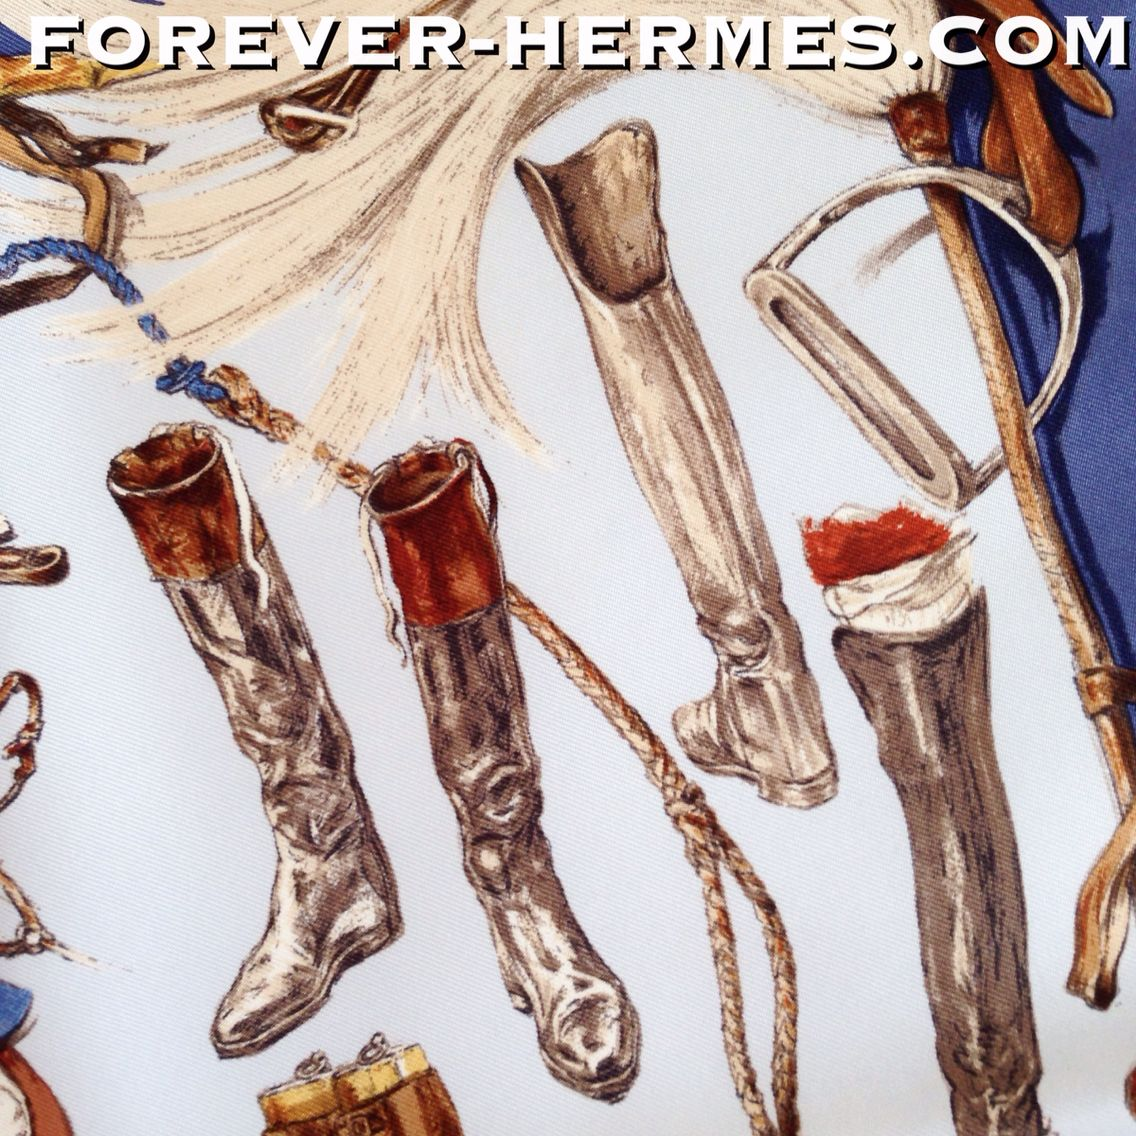 SOLD OUT In our store http://forever-hermes.com #ForeverHermes for shoeporn lovers and boots addicts: Hermes Paris small silk pocketscarf titled A Propos De Bottes by iconic artist Xavier De Poret featuring historic designs of riding boots gentleman hat equestrian artifacts and more boots! men's fashion men's necktie men style women's fashion womenswear hermes carre hermes paris horseriding